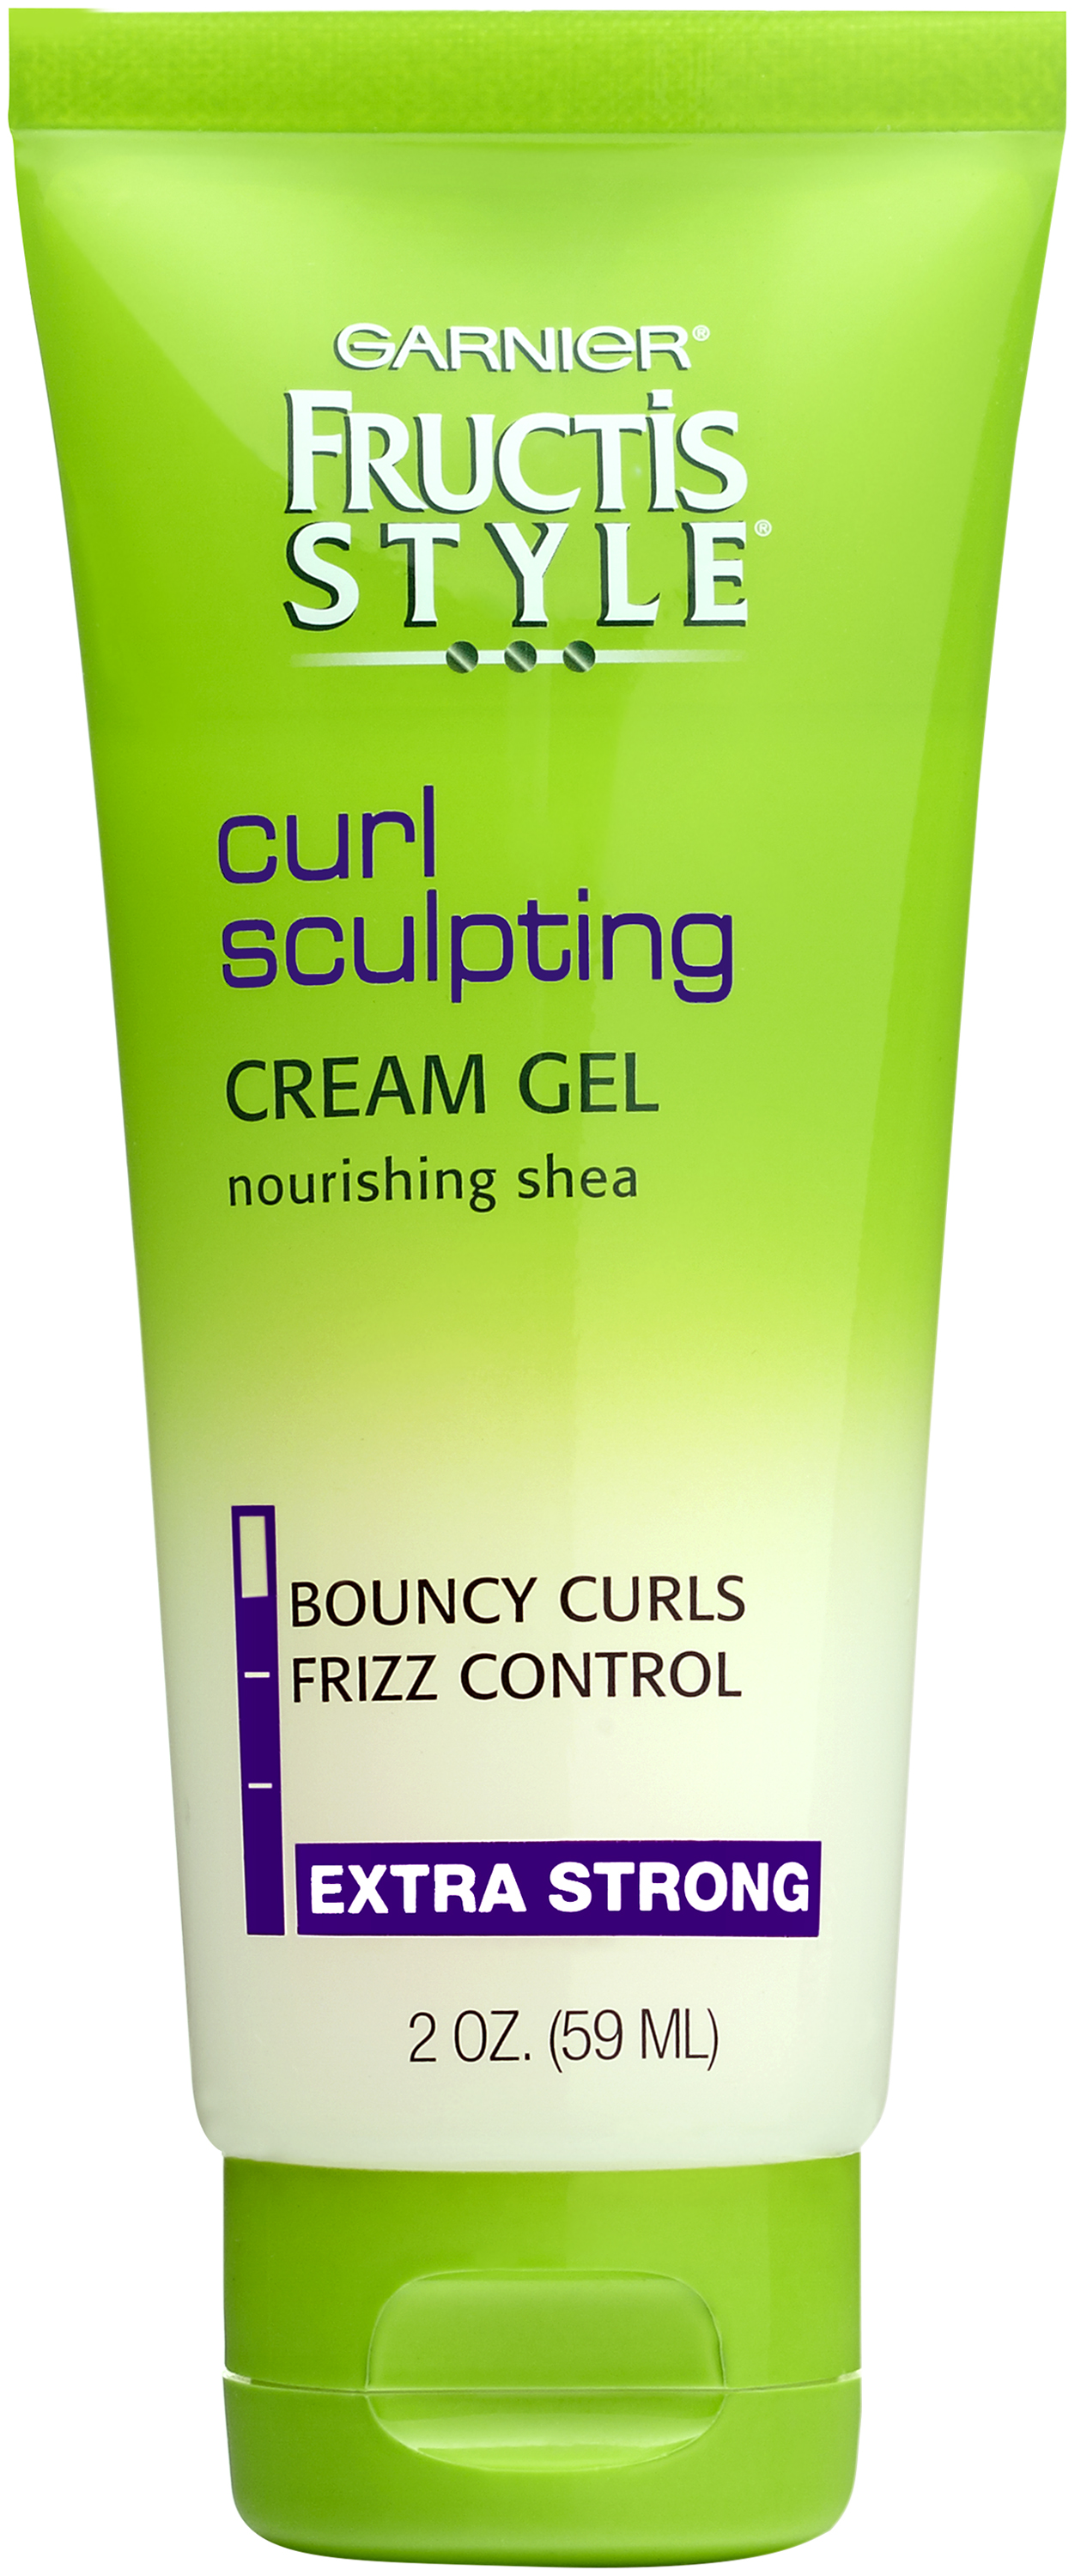 FRUCTIS STYLE® Curl Sculpting Cream Gel Extra Strong Hold 2 oz.